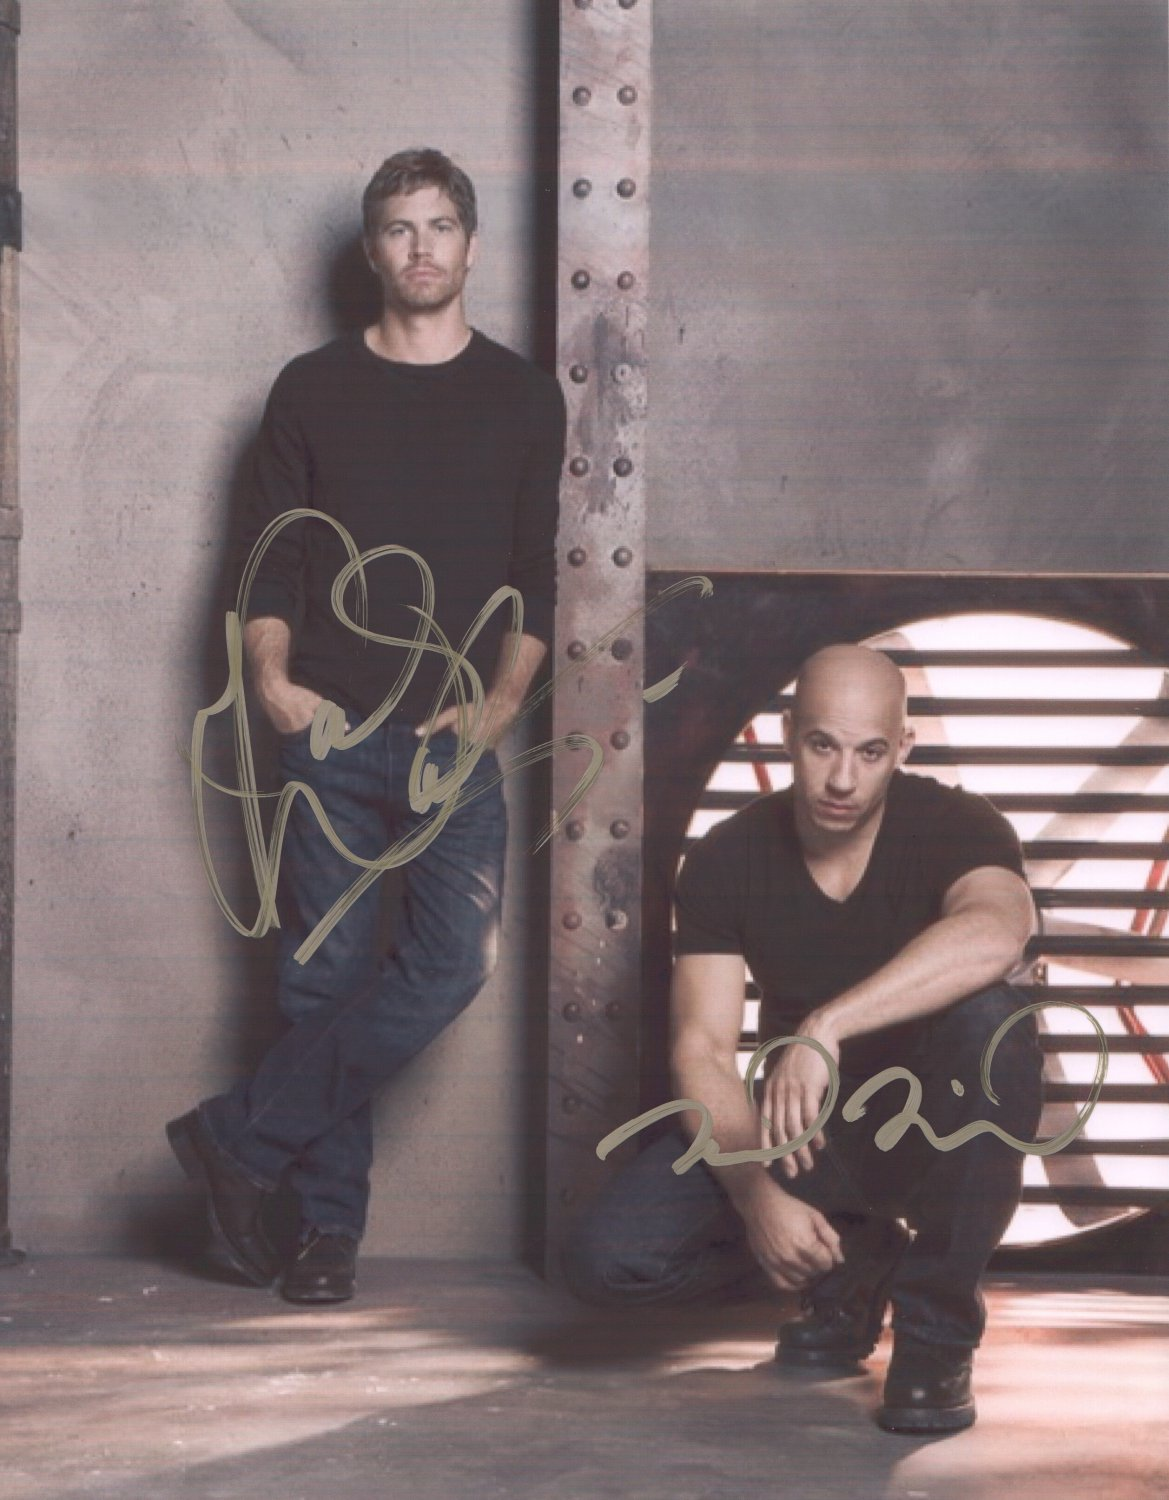 FAST N FURIOUS MOVIE STARS - WALKER & DIESEL - DOUBLE HAND SIGNED AUTOGRAPHED PHOTO WITH COA